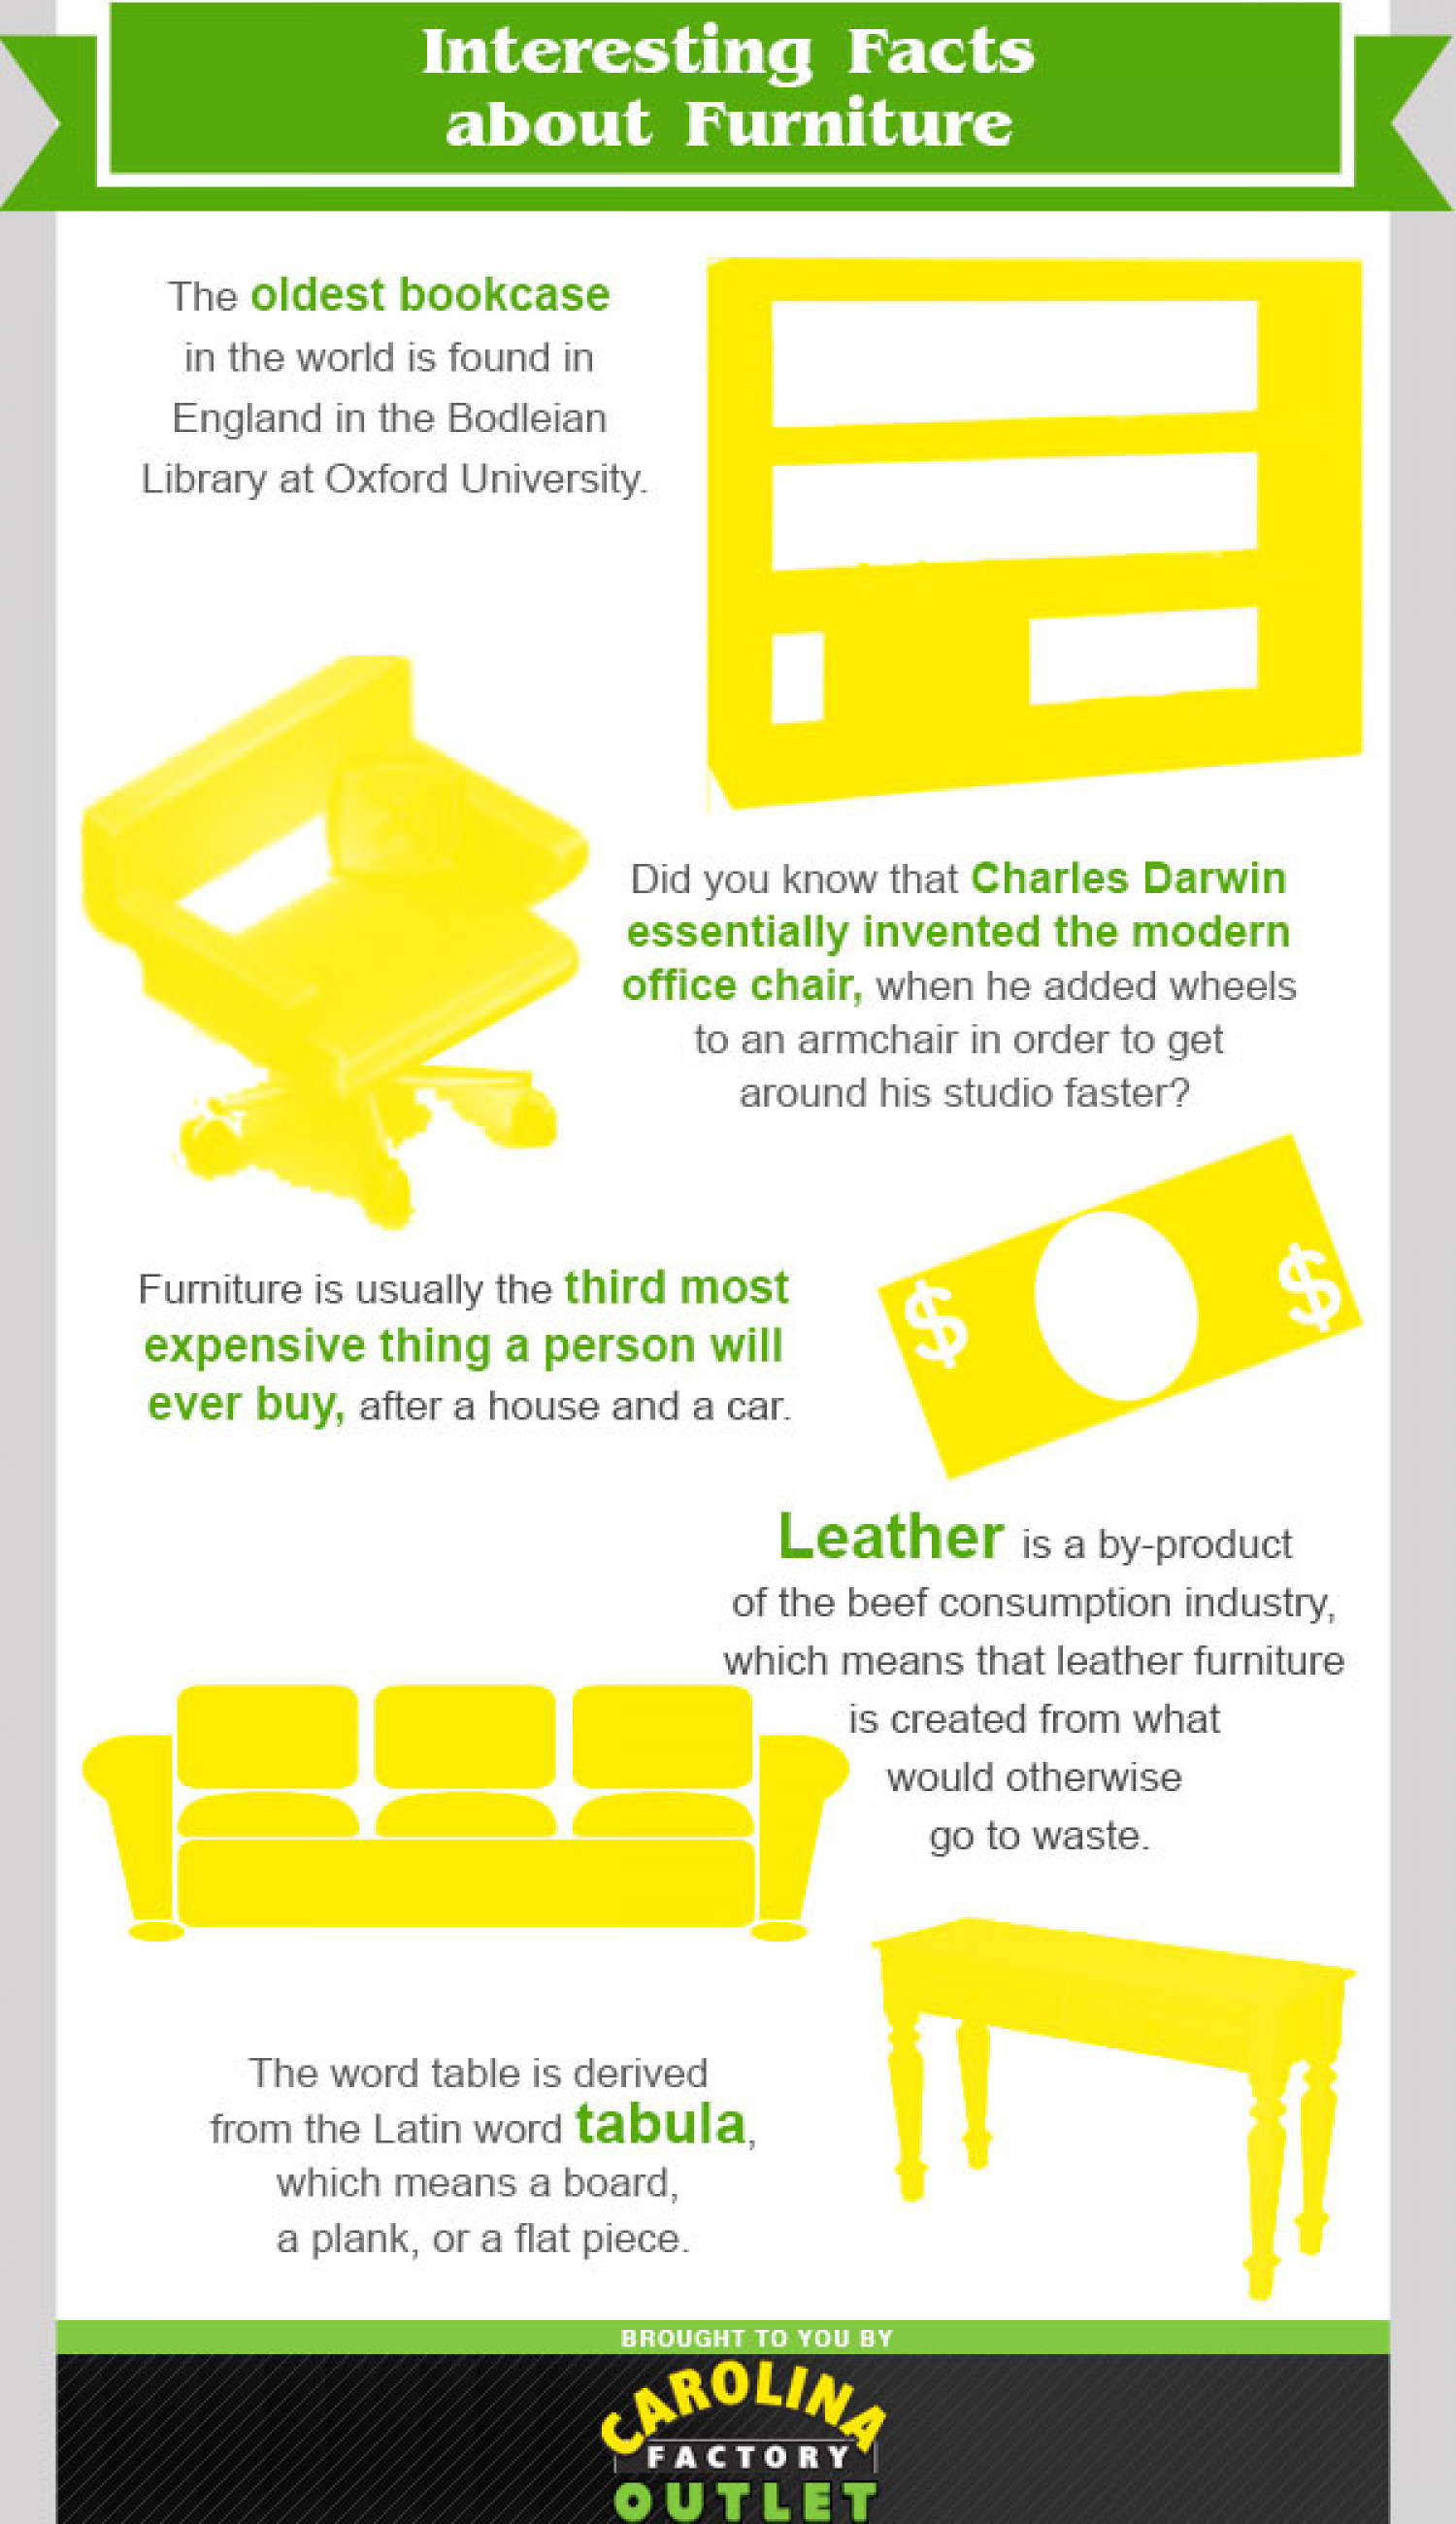 Interesting Facts about Furniture  sc 1 st  Visually & Interesting Facts about Furniture | Visual.ly